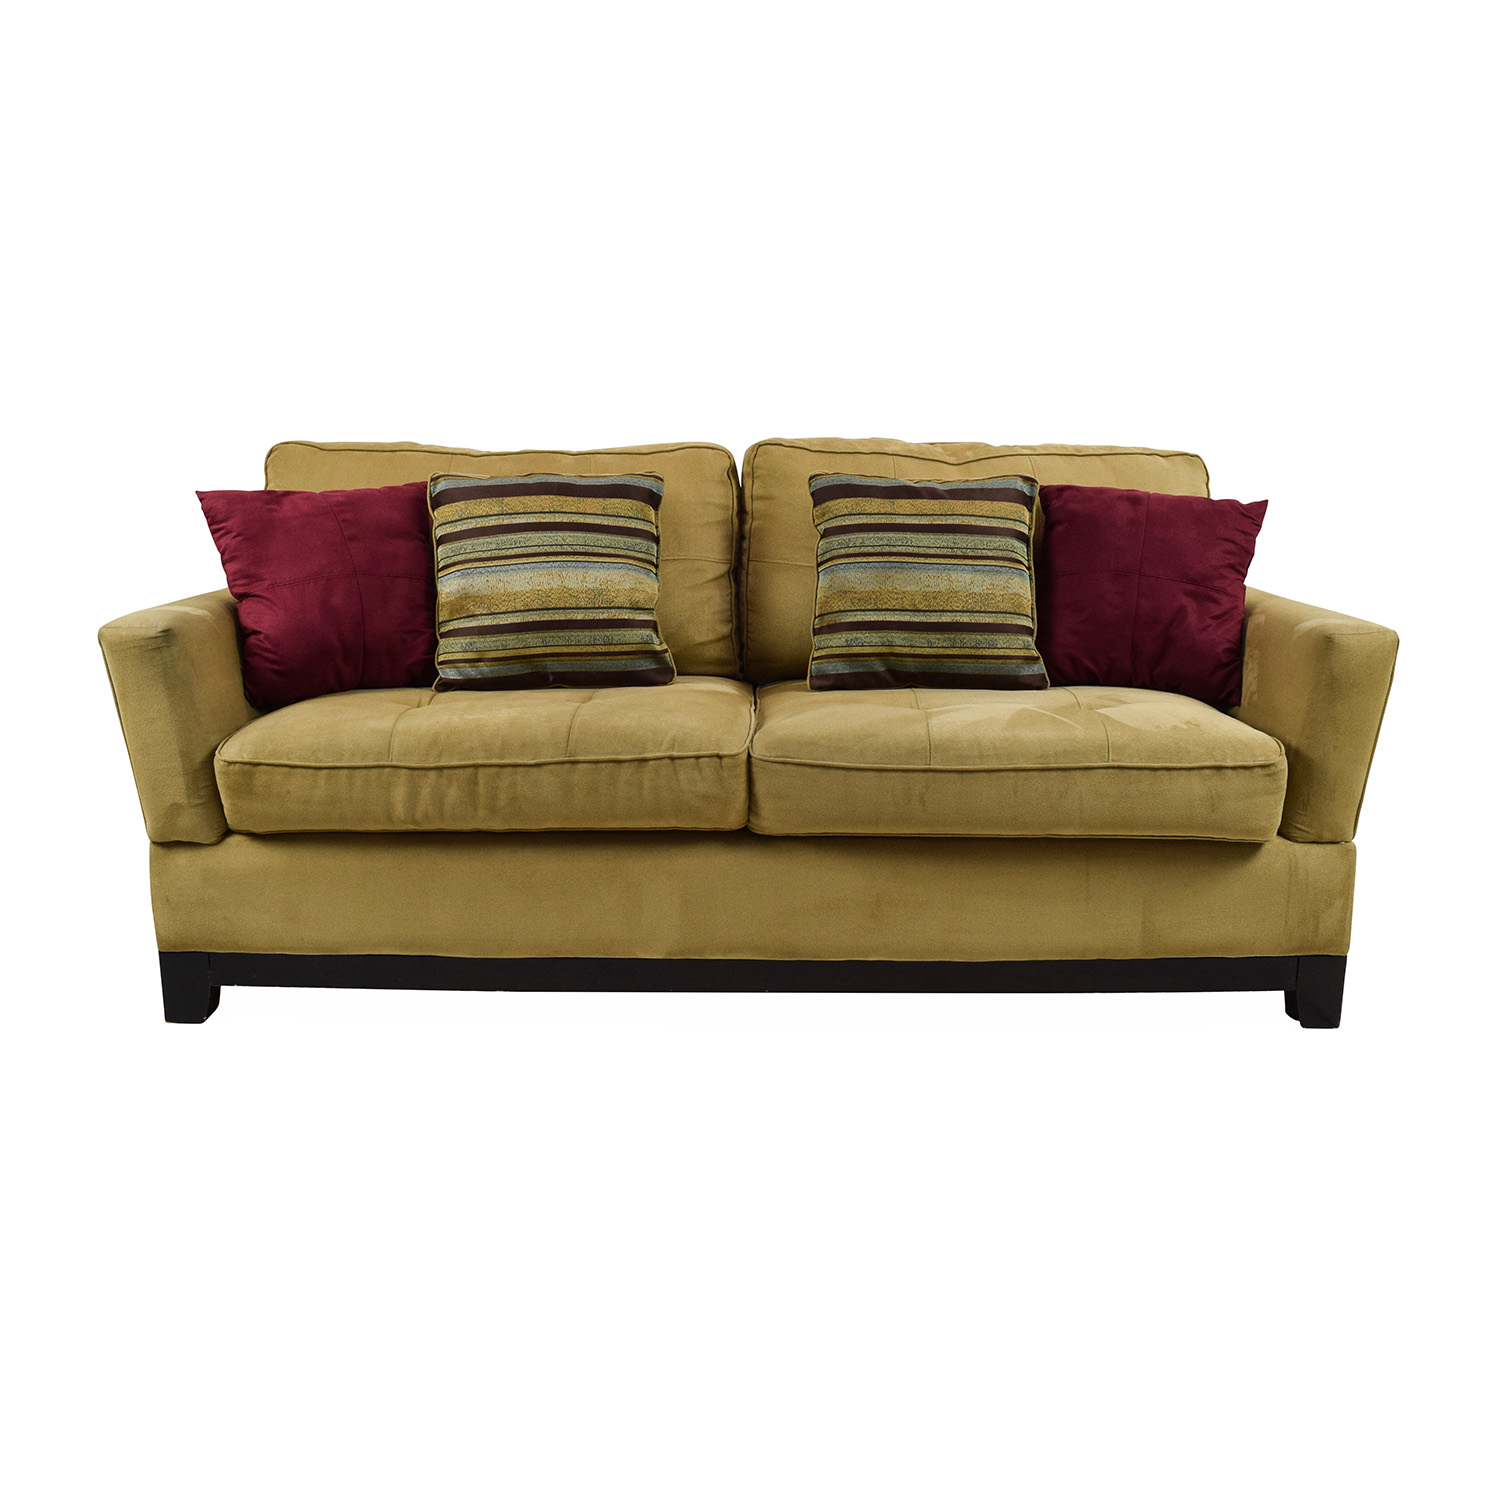 Jennifer Convertibles Jennifer Convertibles Tan Sofa Sofas